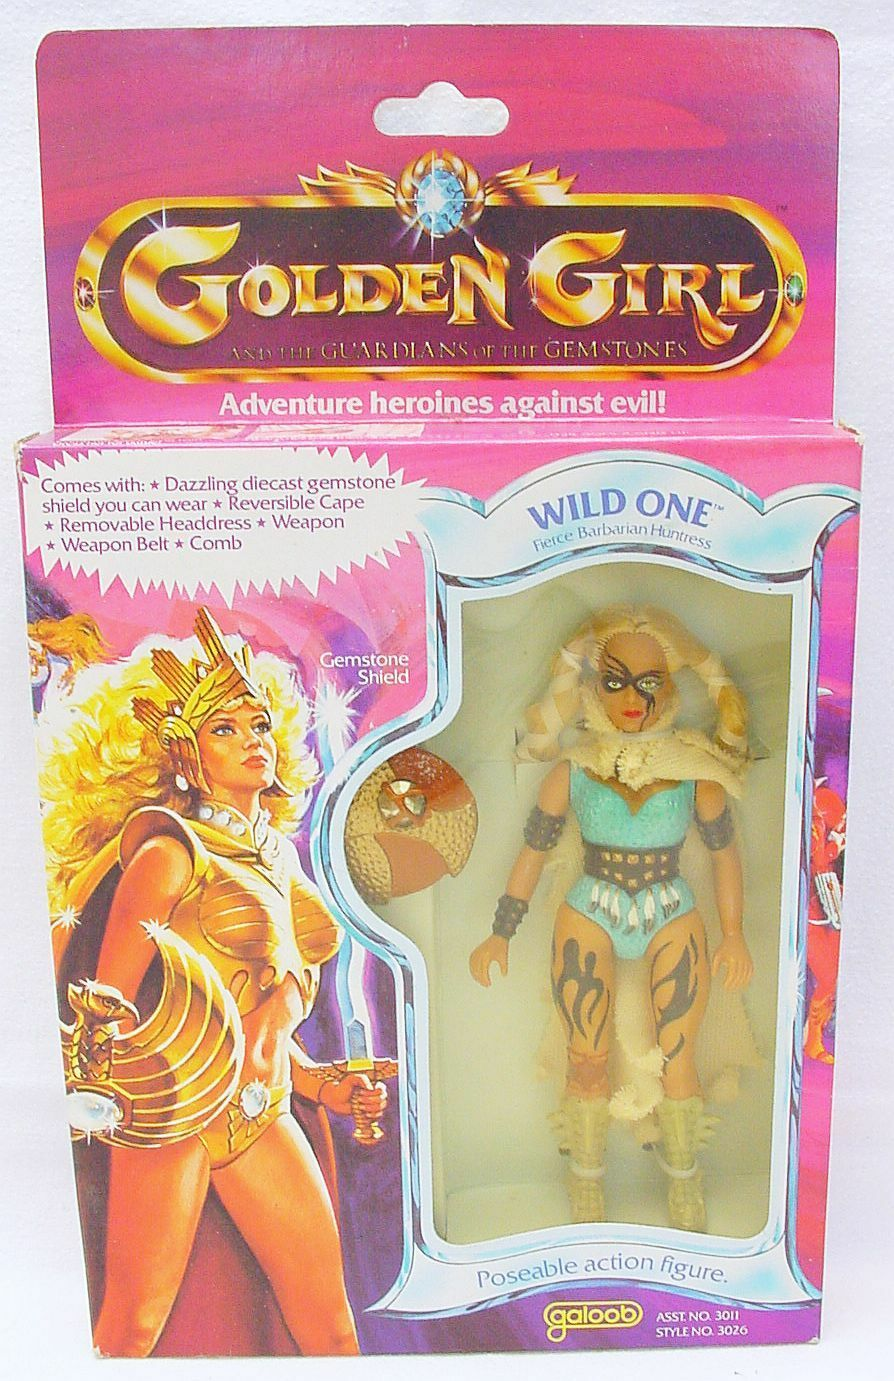 Galoob GoldEN GIRL WILD ONE Fierce Barbarian Huntress Action Figure MISB`84 RARE